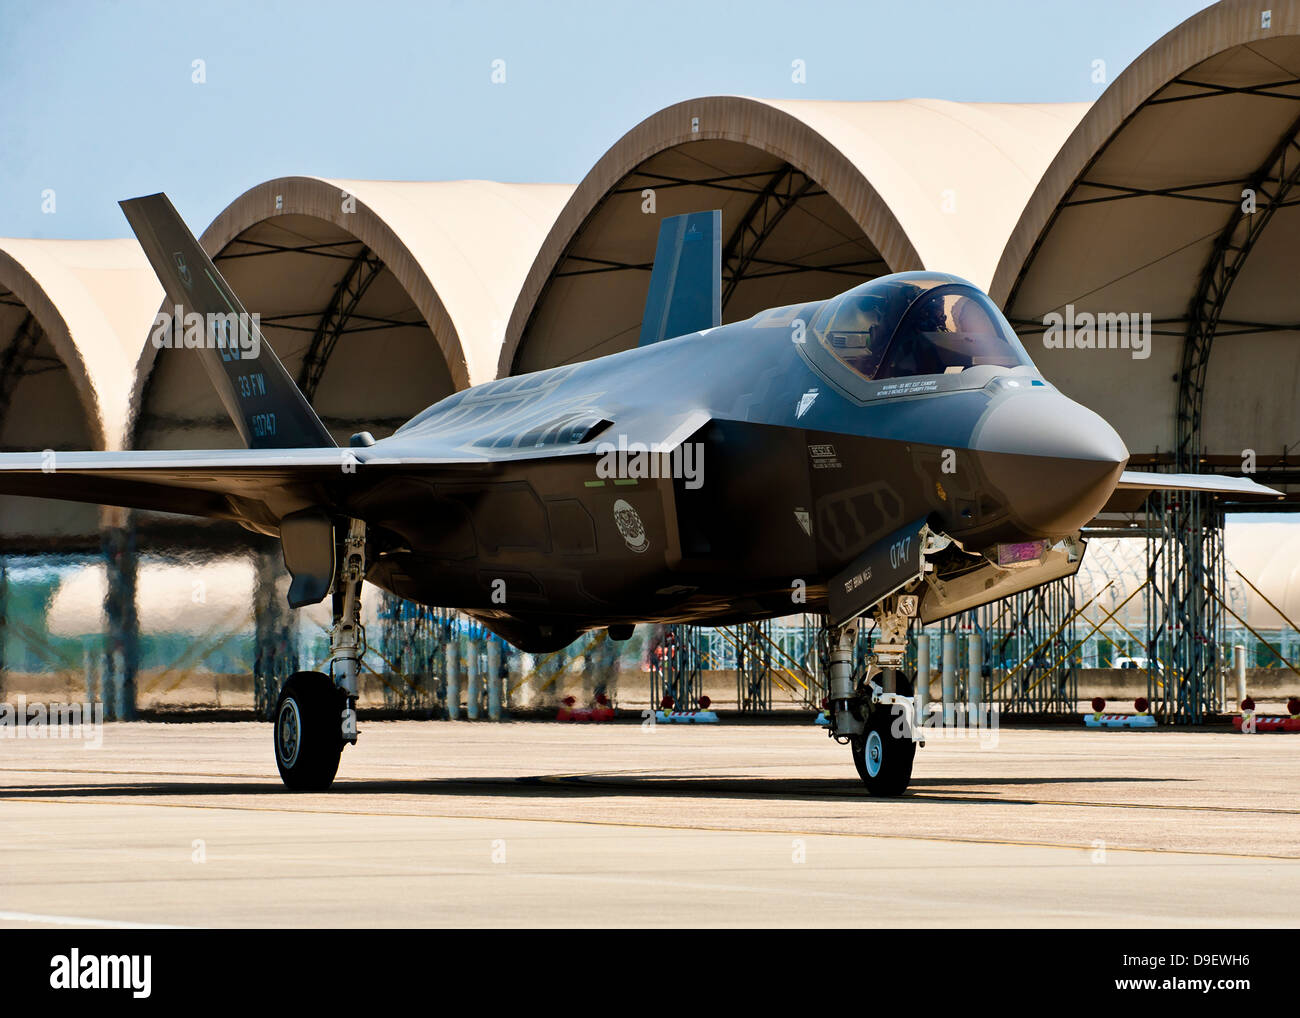 An F-35 Lightning II taxiing at Eglin Air Force Base, Florida. - Stock Image